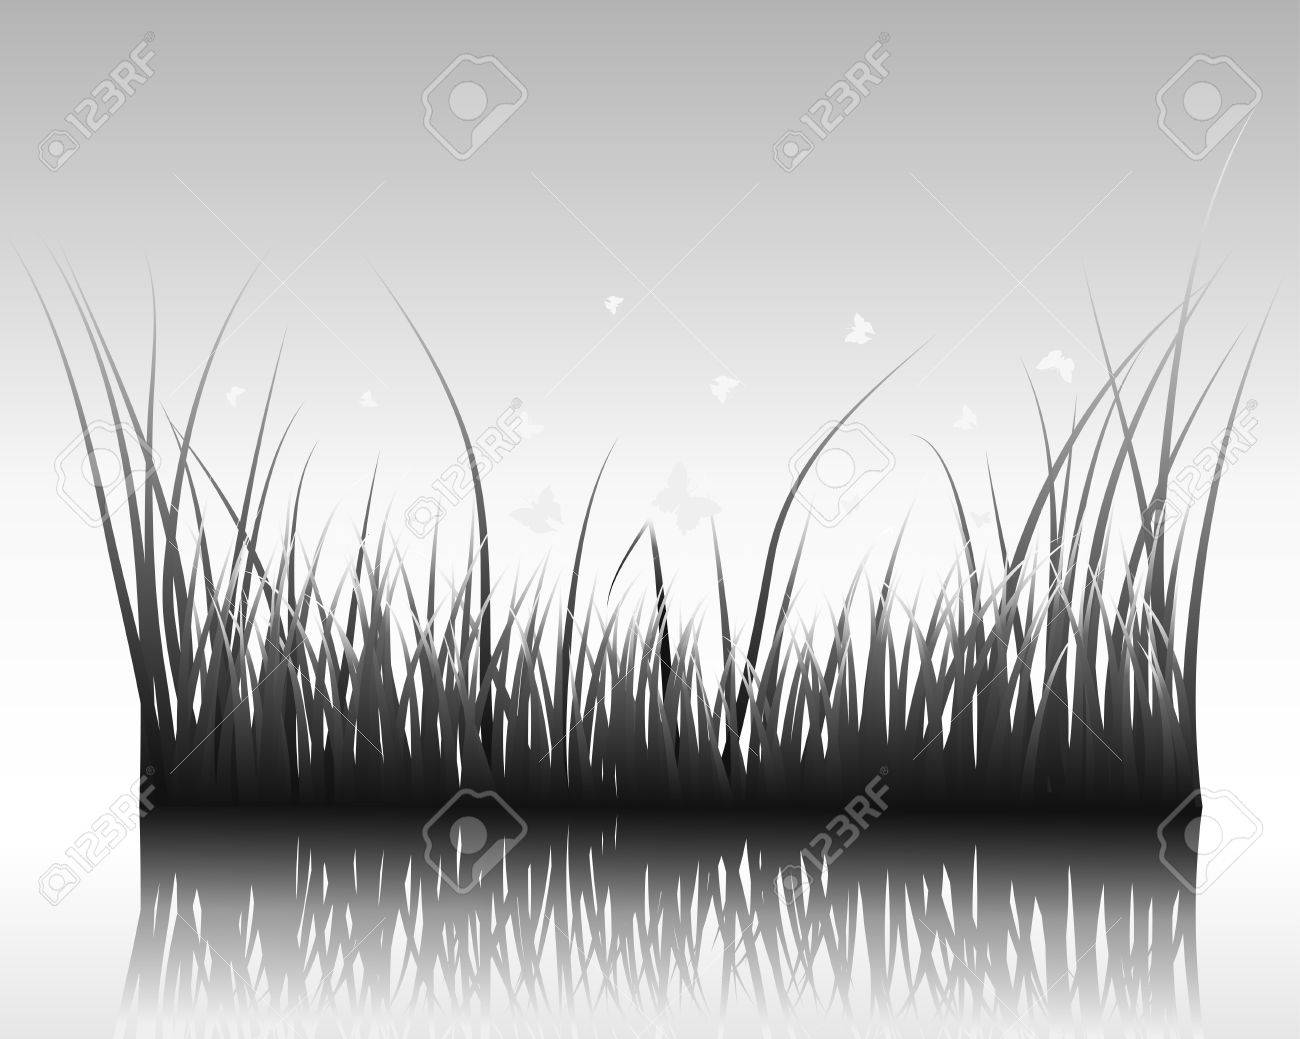 Vector grass silhouettes background with reflection in water. All objects are separated. Stock Vector - 12493049